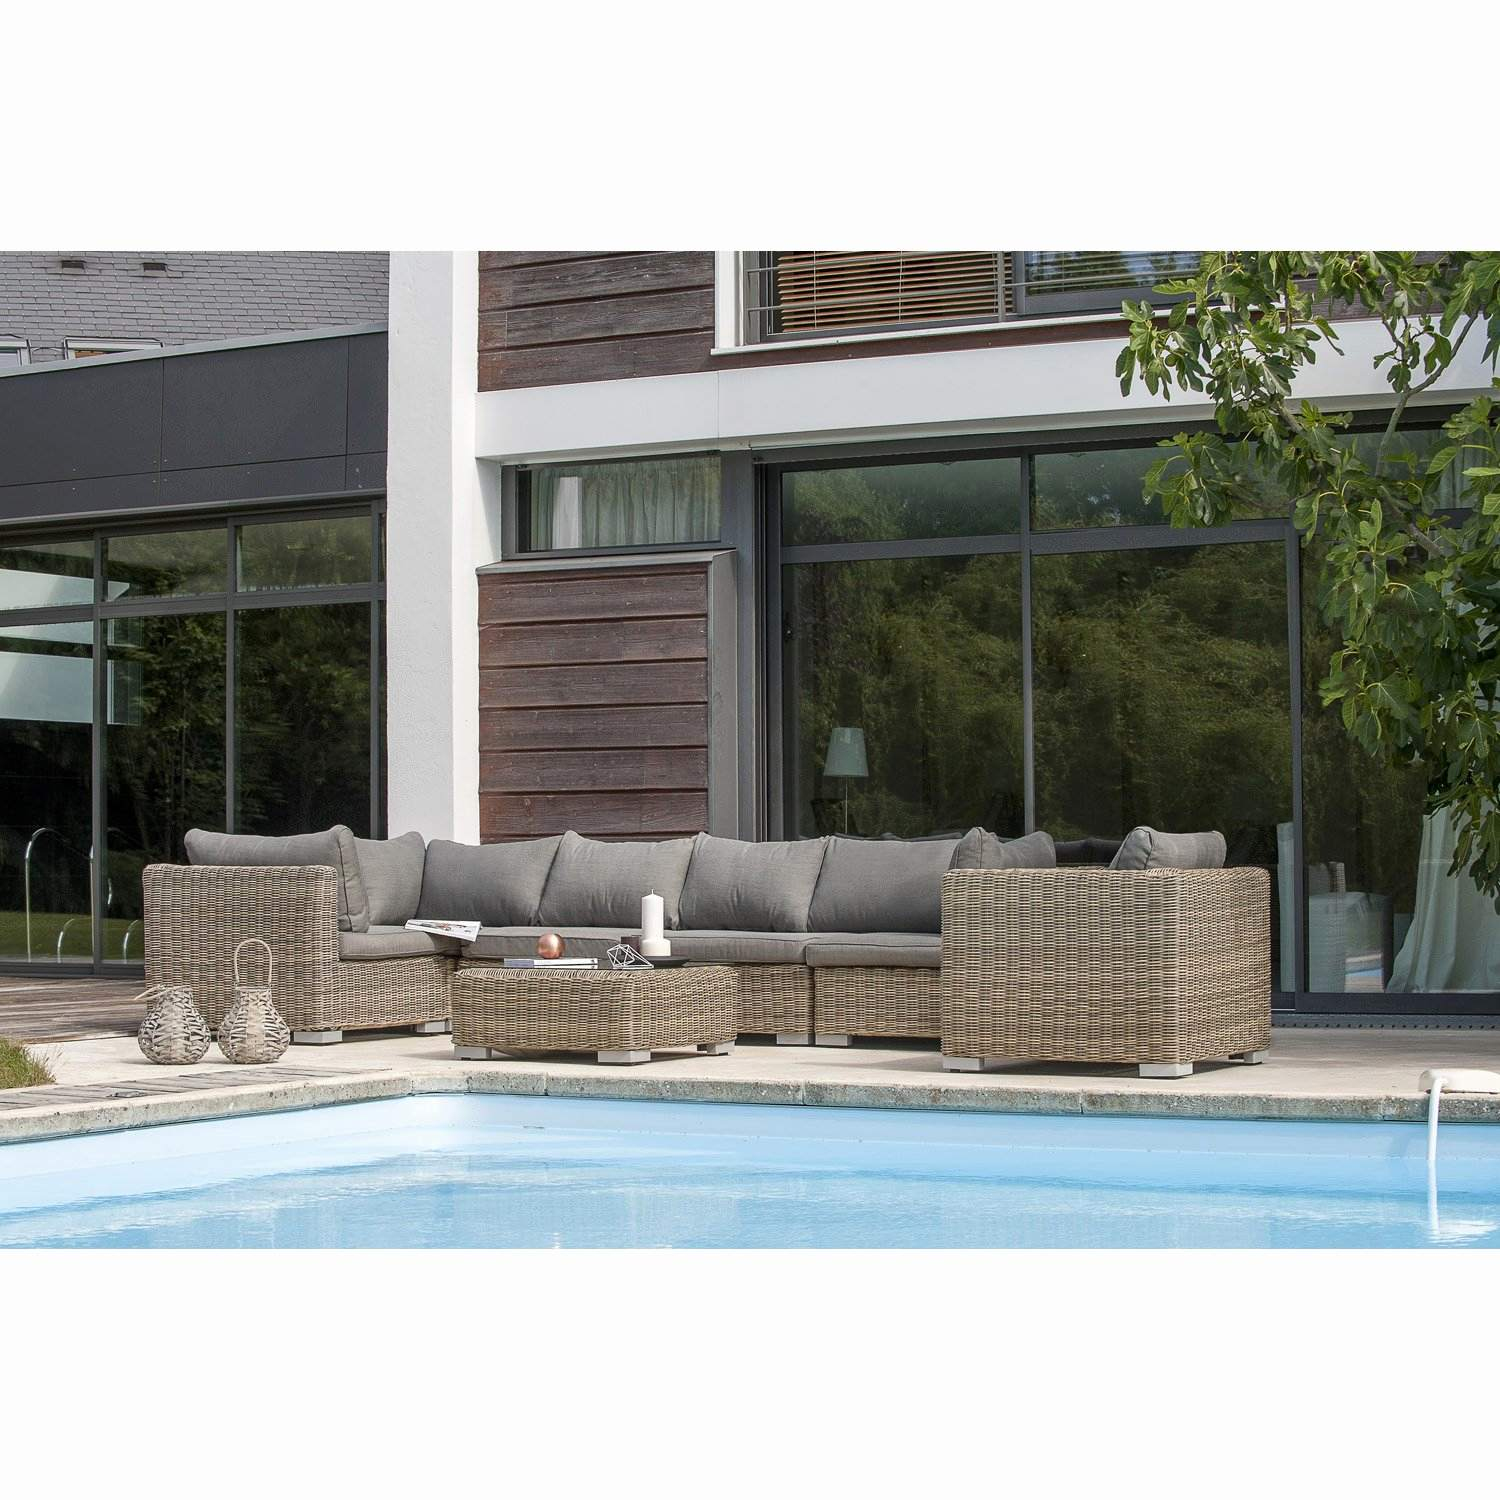 Chalet Leroy Merlin Luxe Collection Chaise Jardin Leroy Merlin Nouveau Frais De Chalet De Jardin Leroy